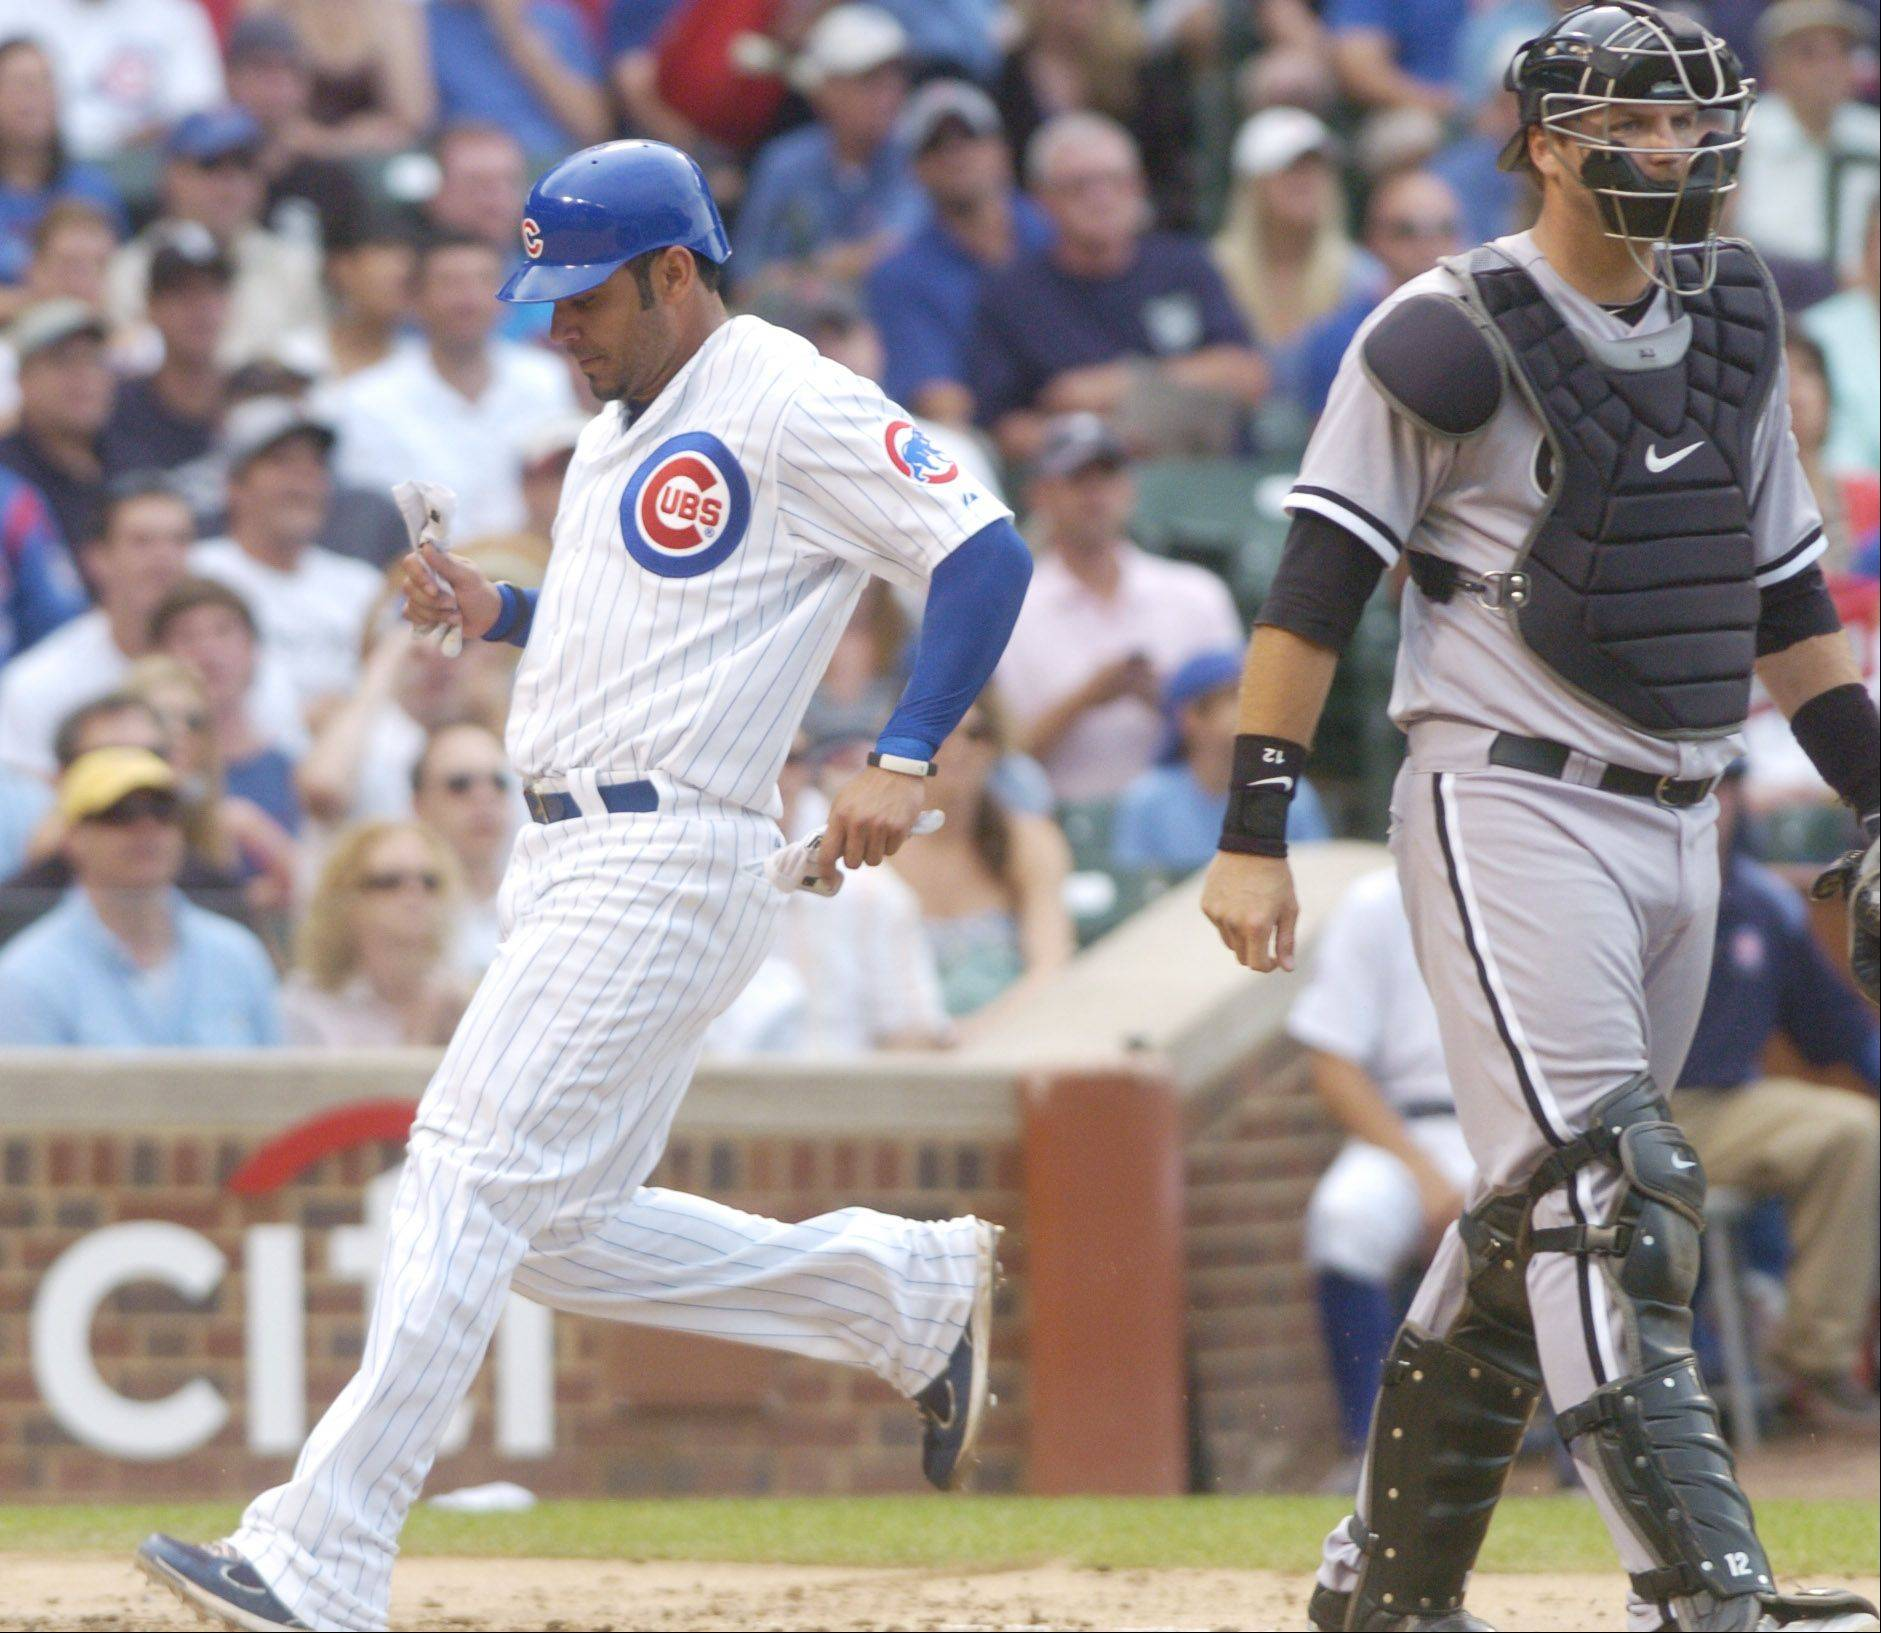 Carlos Pena of the Cubs scores during the second inning as White Sox catcher A.J. Pierzynski stands at the plate Friday.